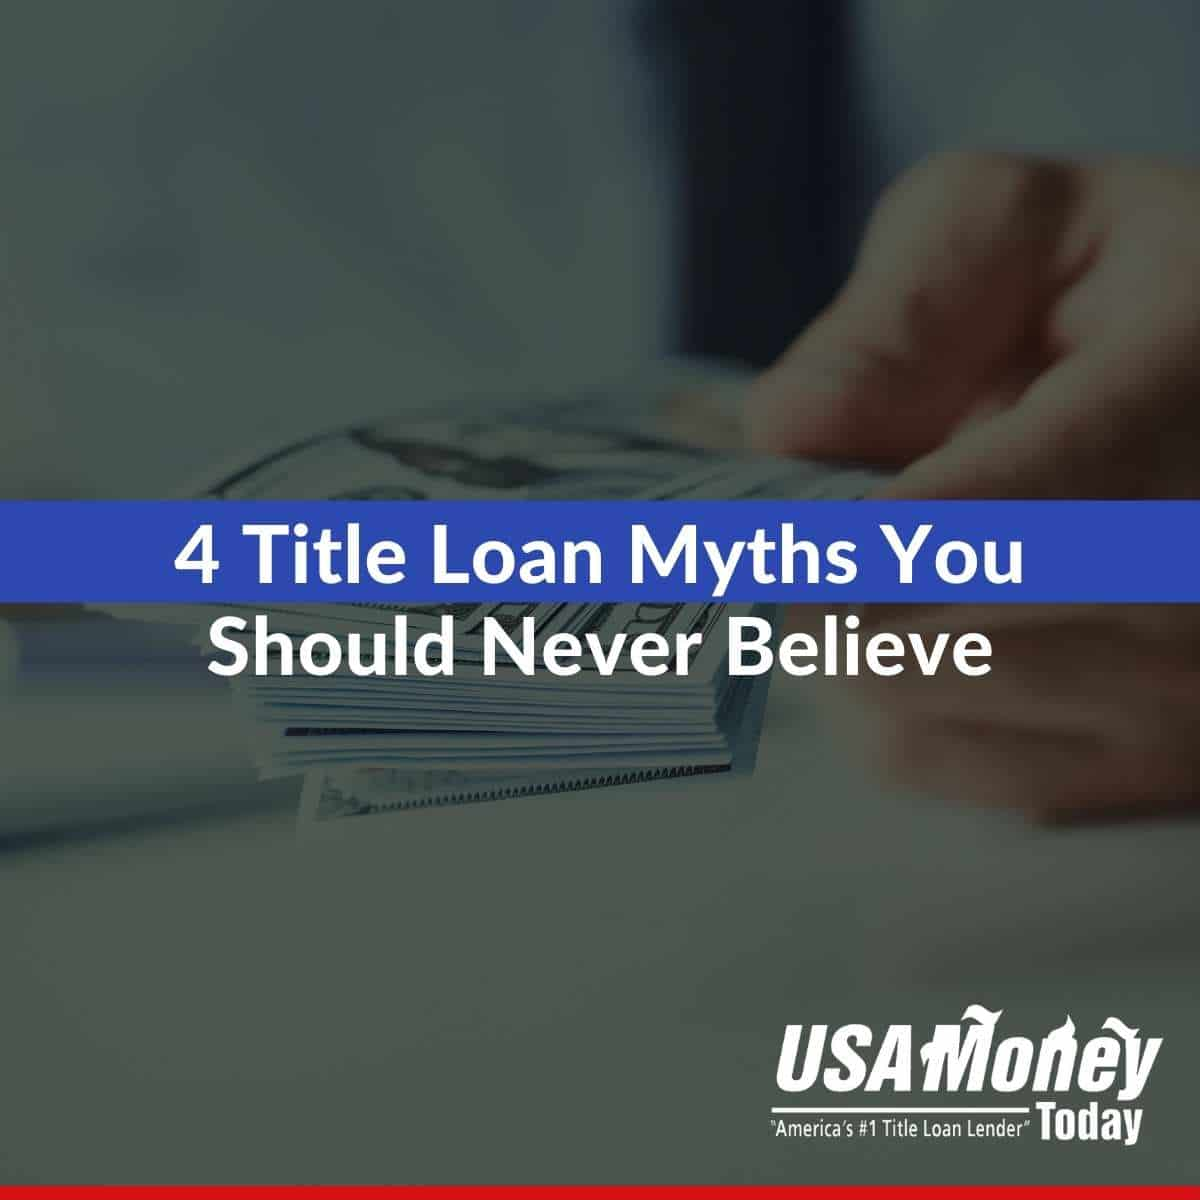 4 title loan myths you should never believe